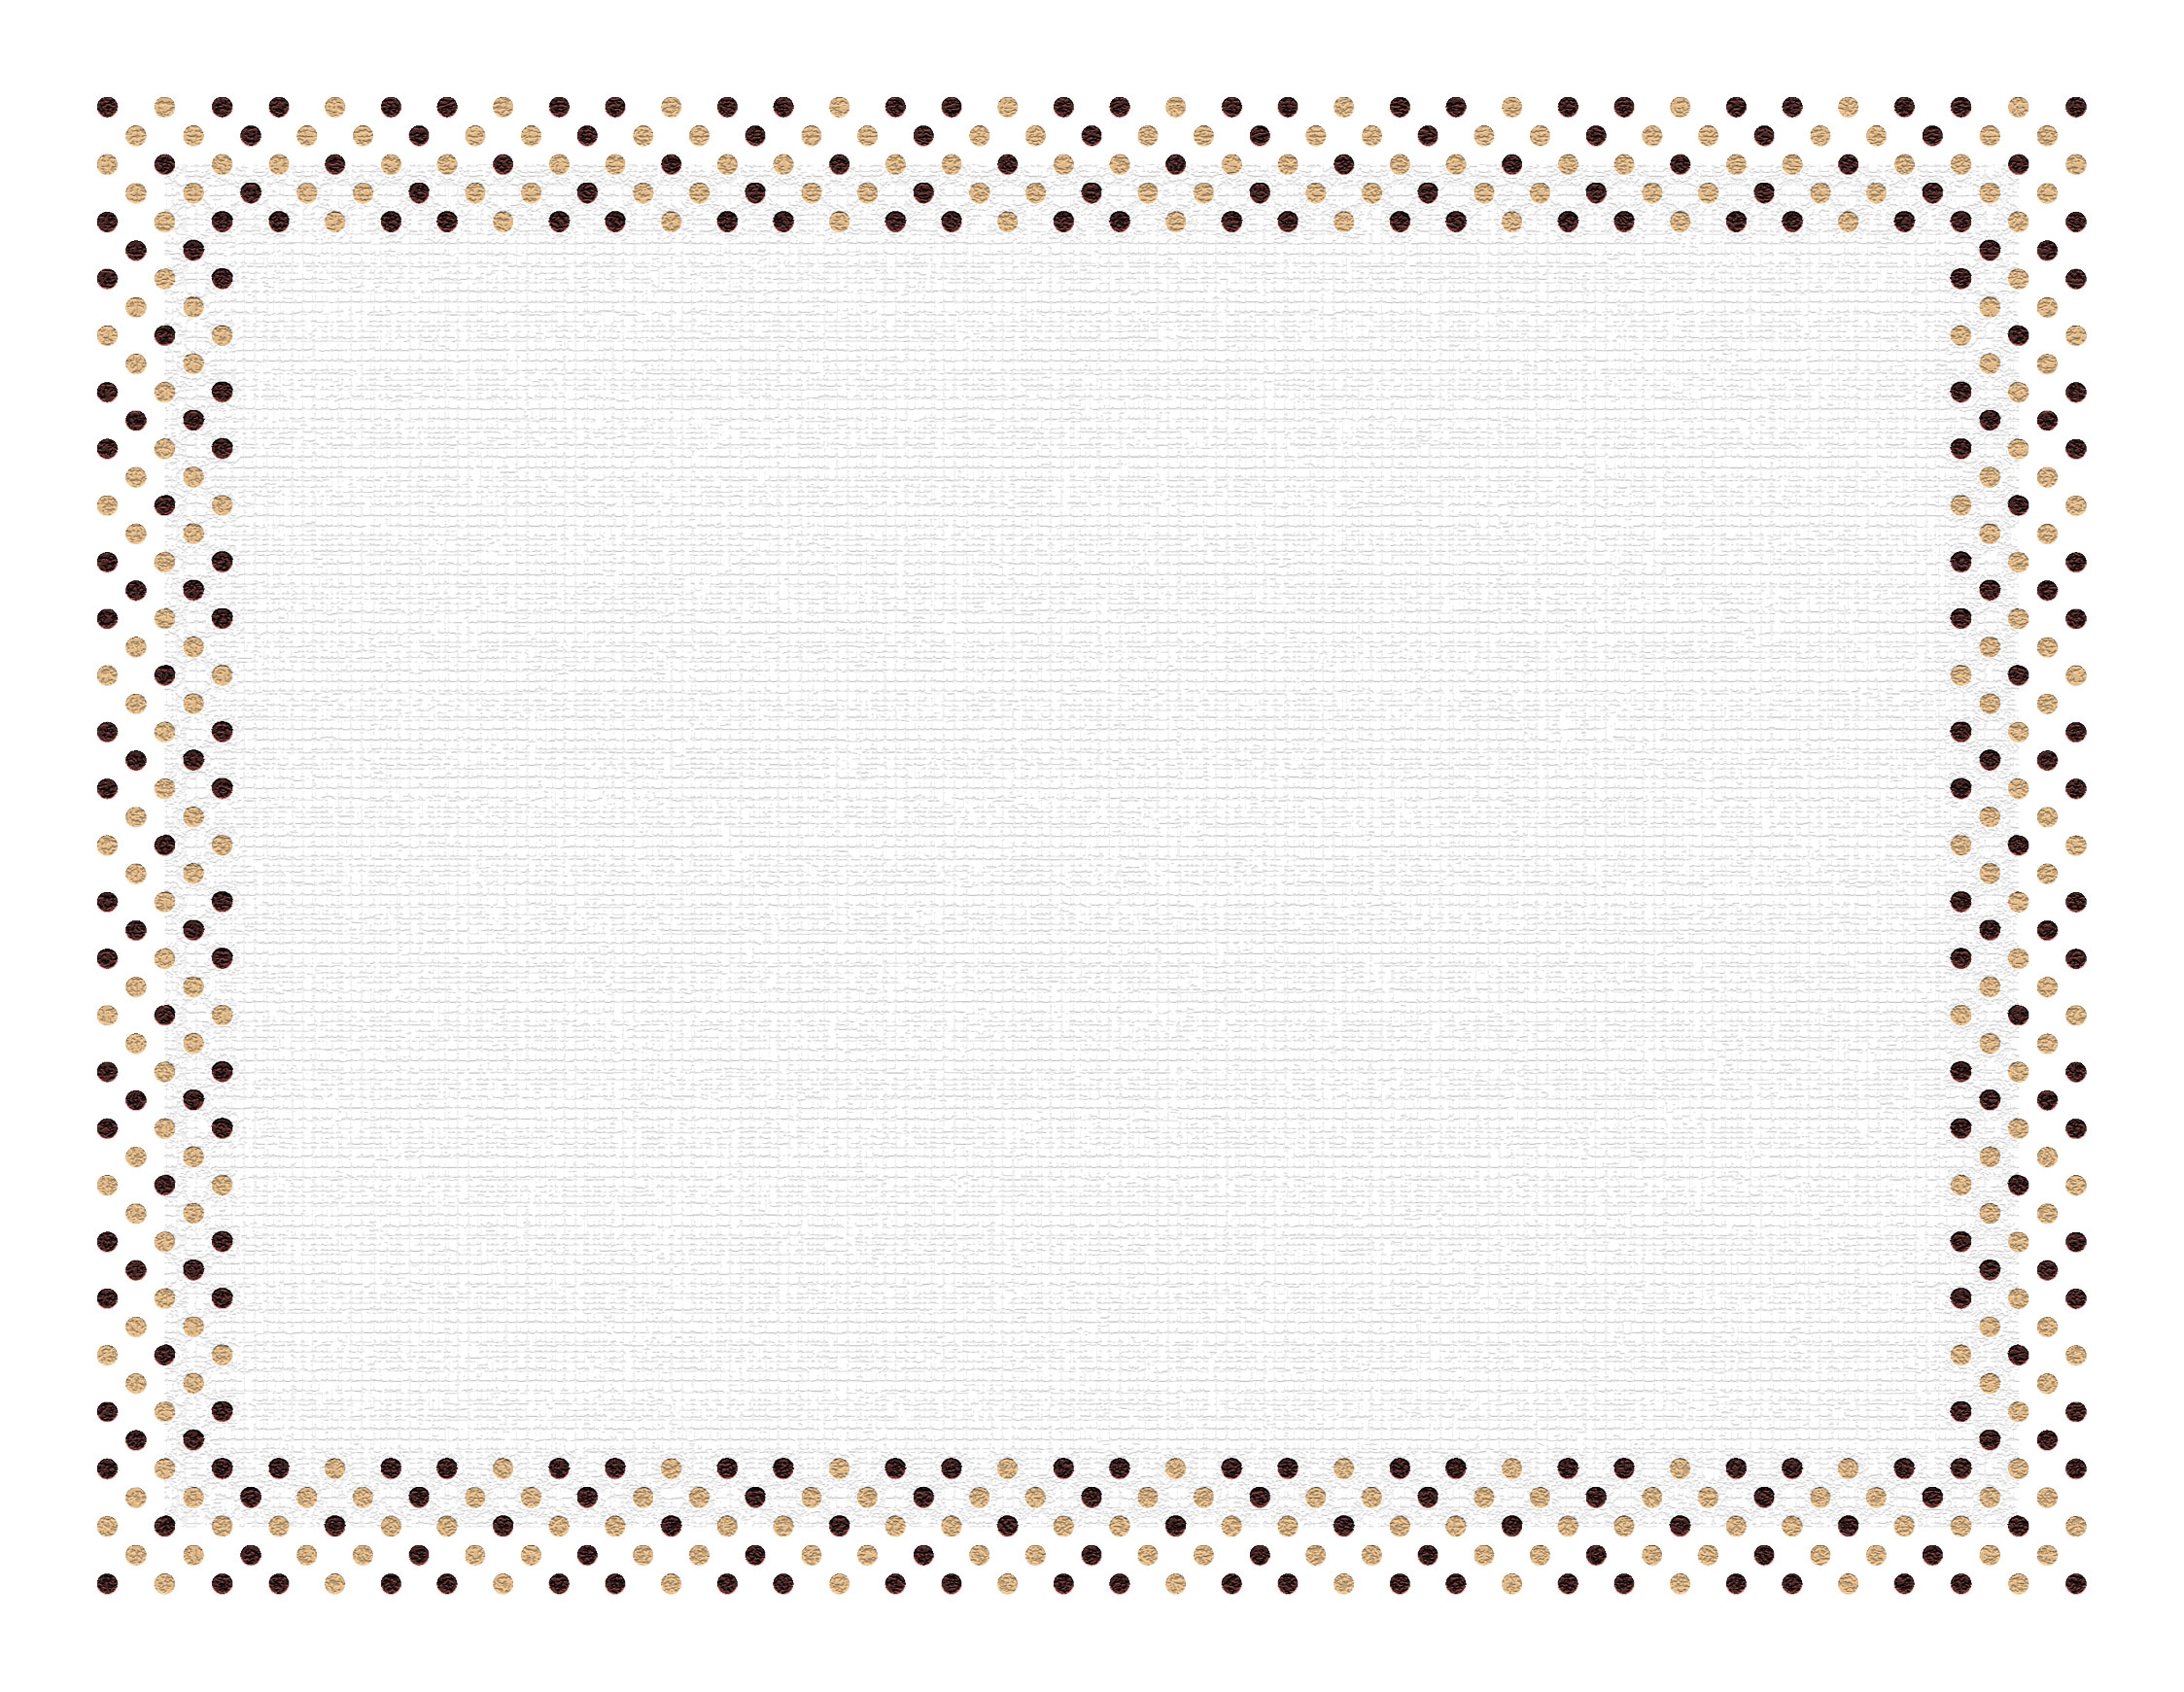 Gift certificate border templates 8 template certificate gift certificate border templates yadclub Images